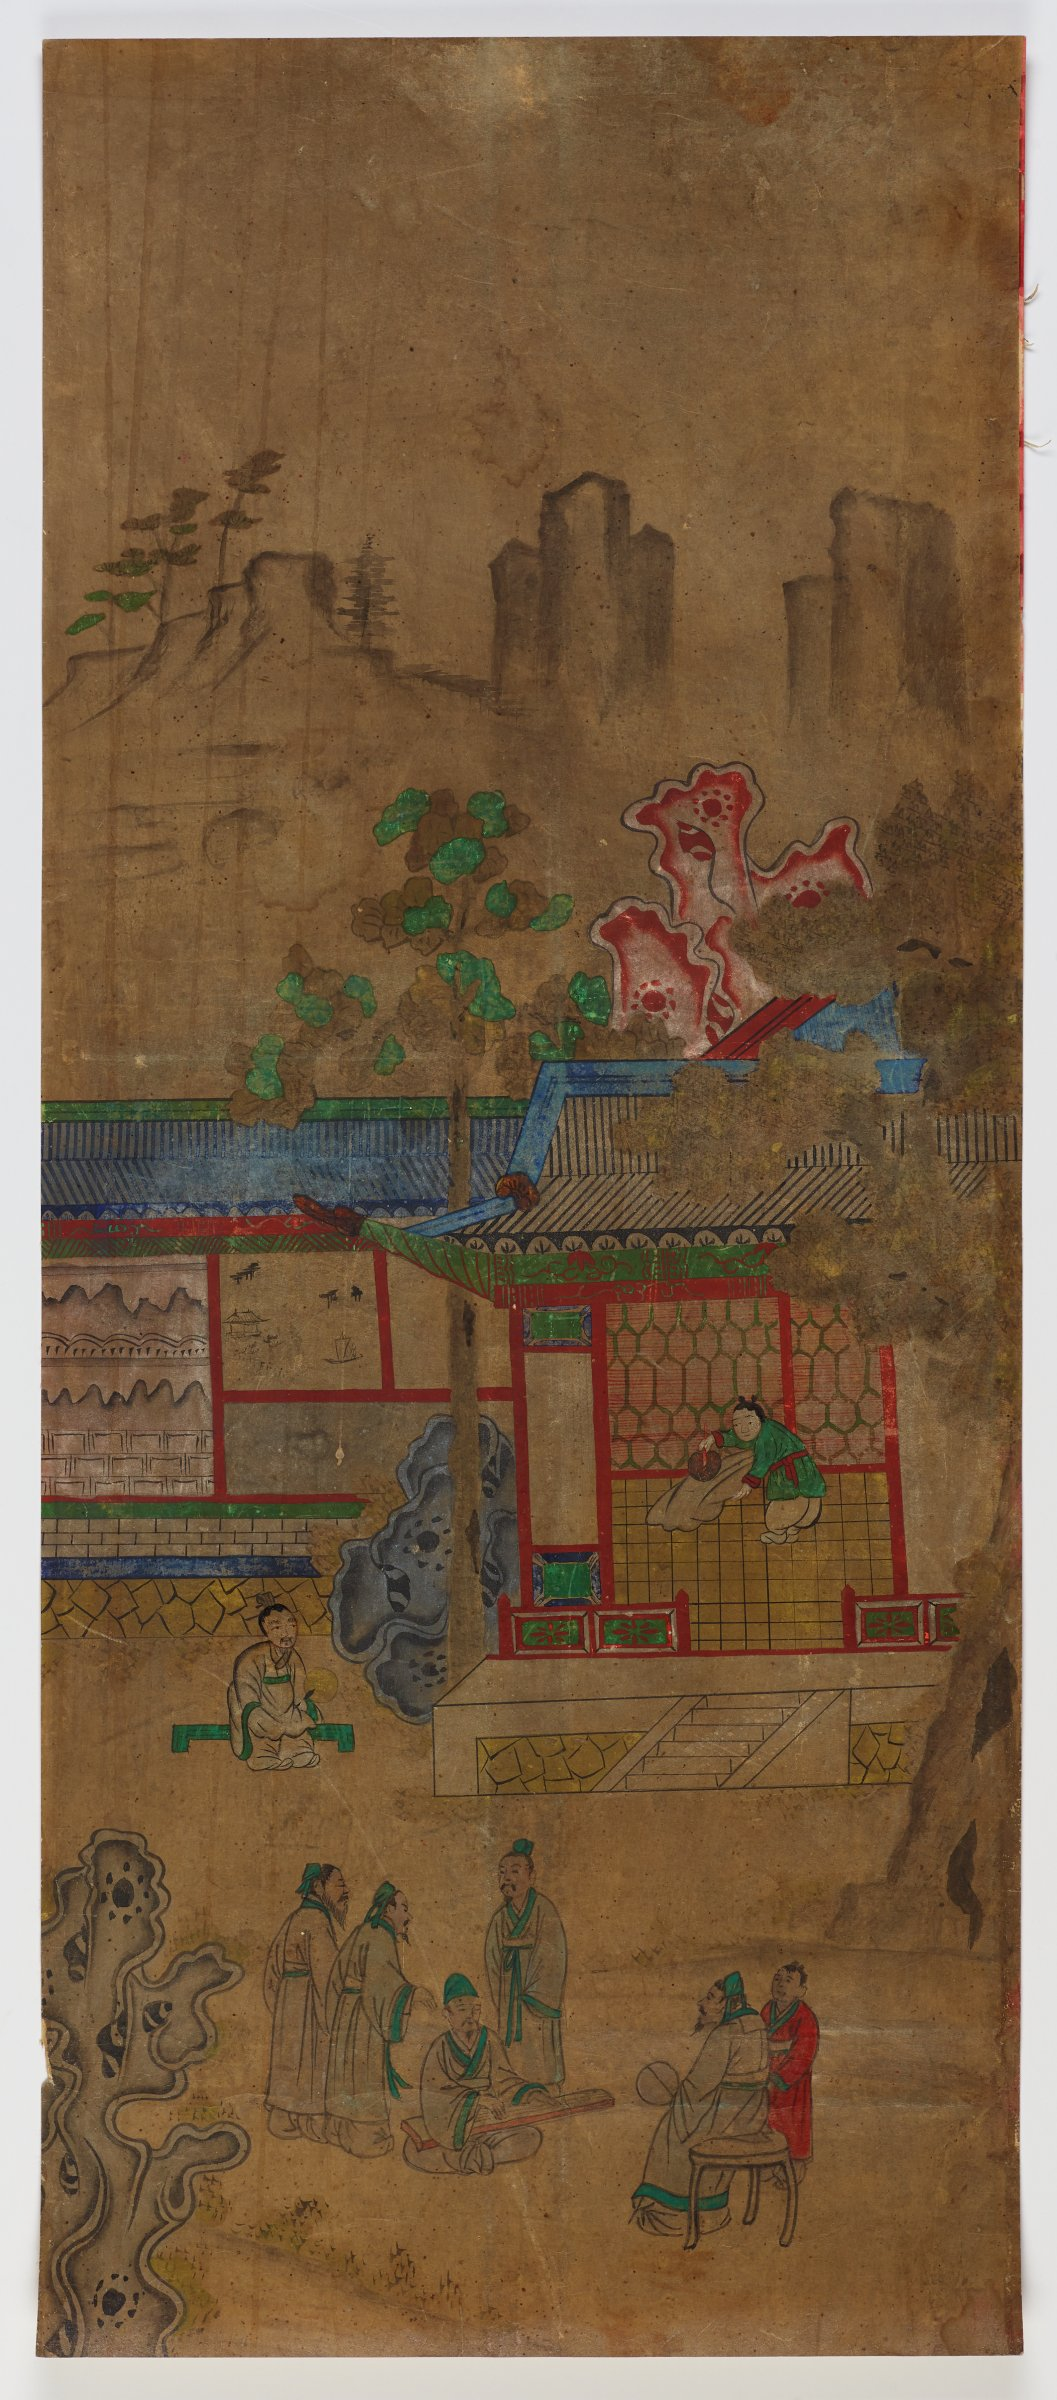 """2/8. """"Huang Xiang Fans the Pillow"""" from """"Chapter on Filial Sons"""" Illustrated Stories Exemplifying the Five Confucian Virtues (Oryun Haengsildo)One of eight unmounted screen panel paintings with scenes of filial piety. Originally intended to be mounted as a folding screen."""